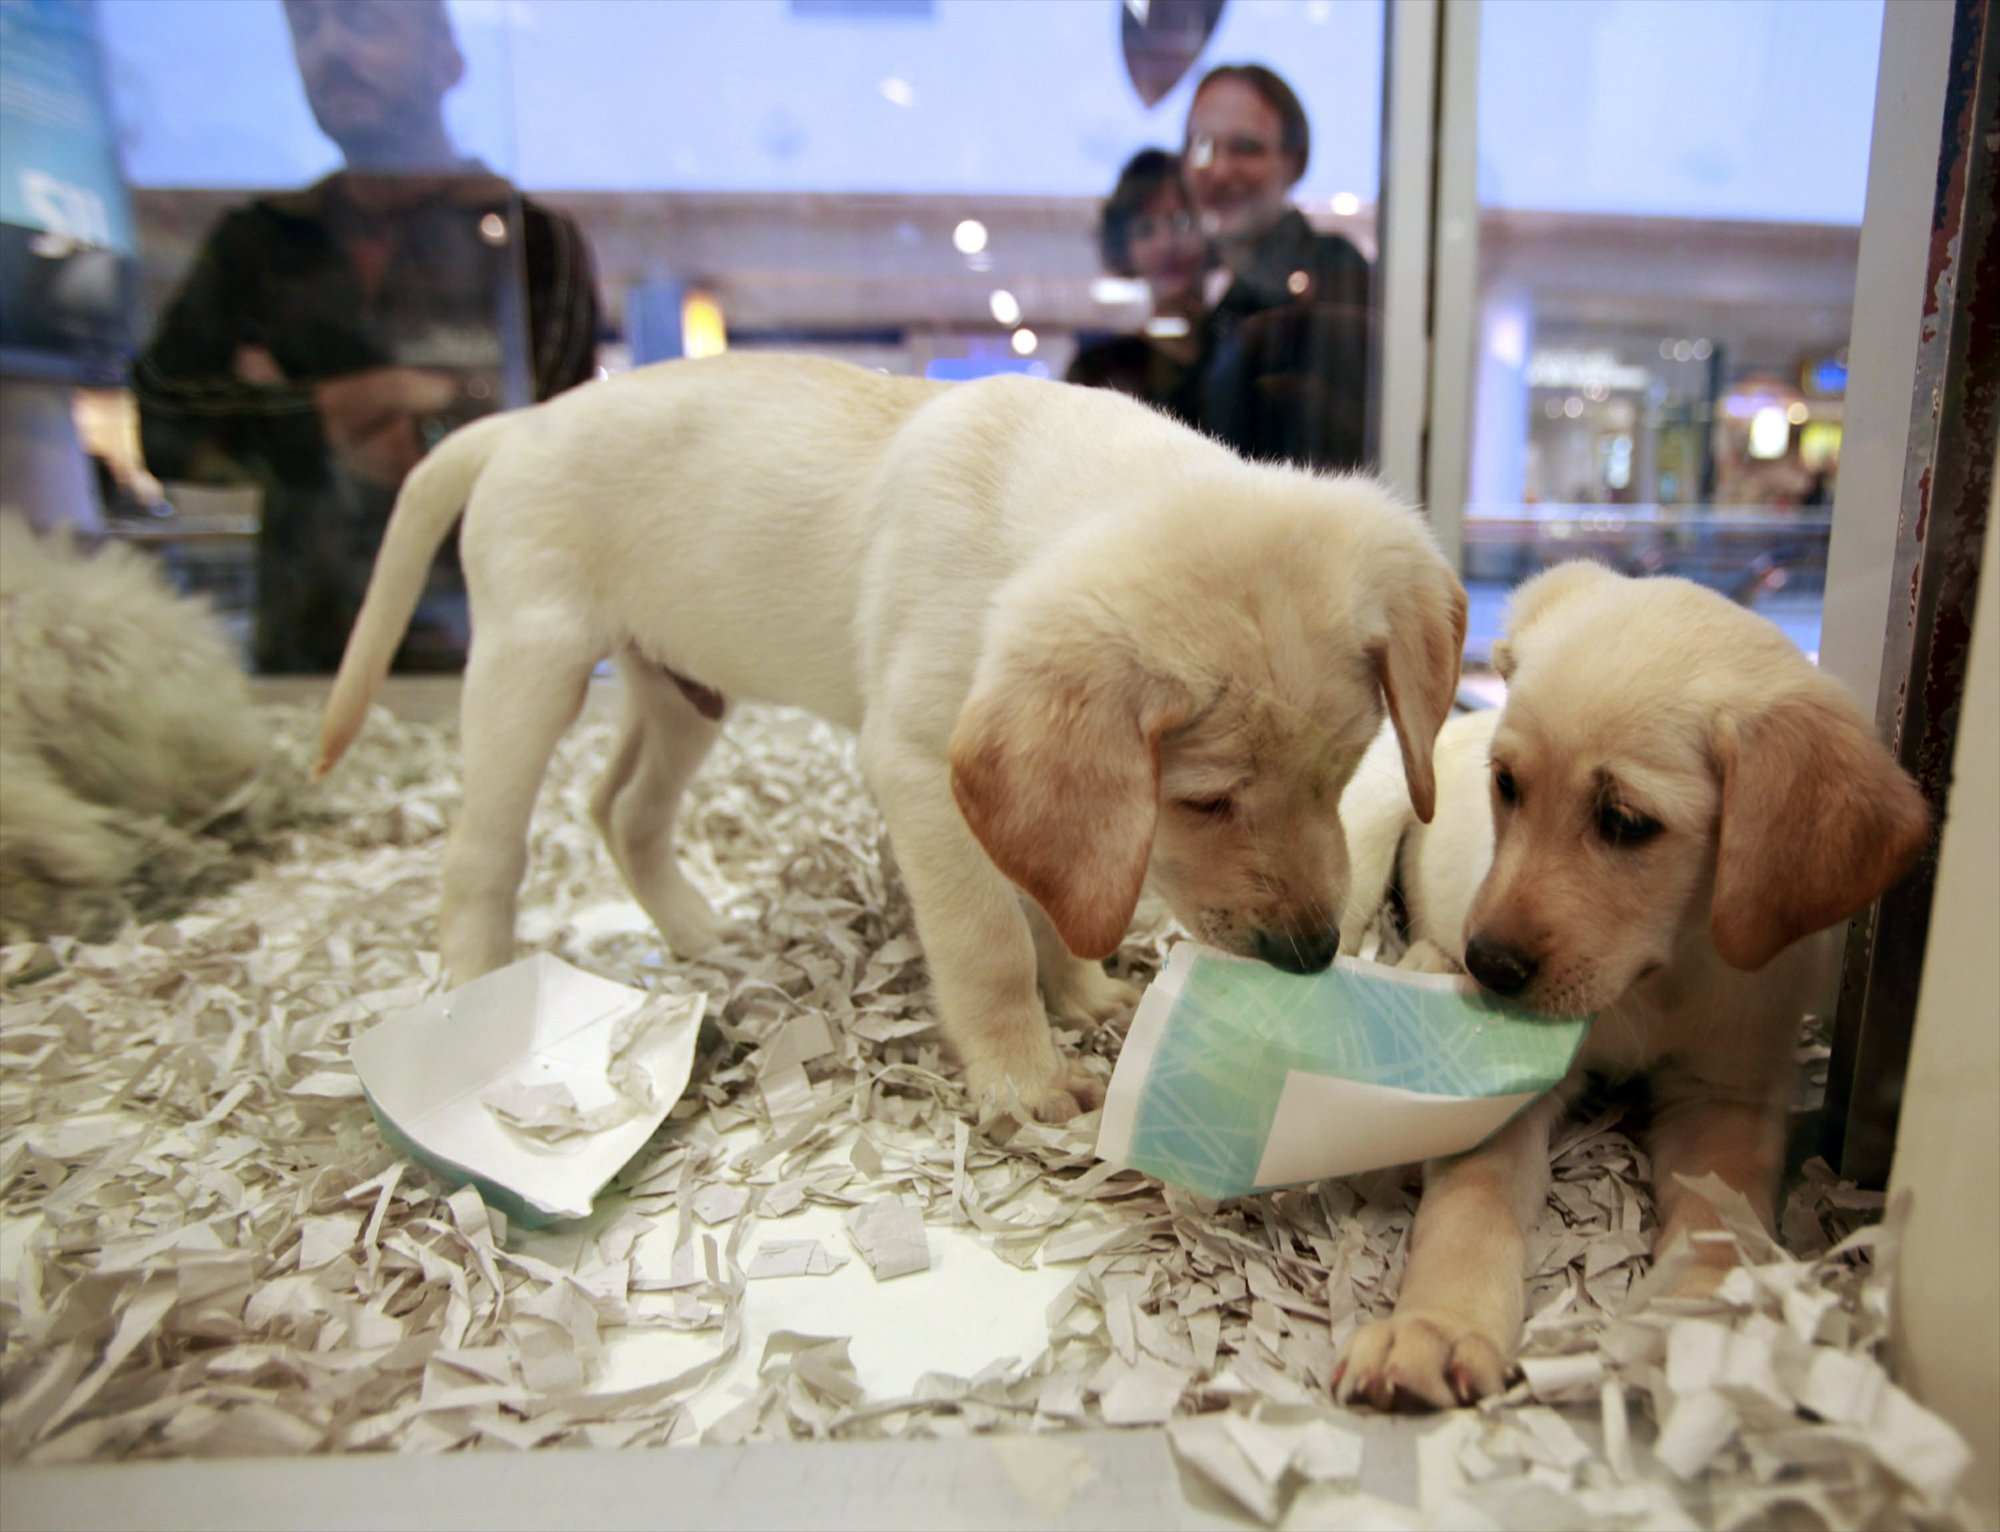 Uk Bans Pet Shops From Selling Puppies And Kittens